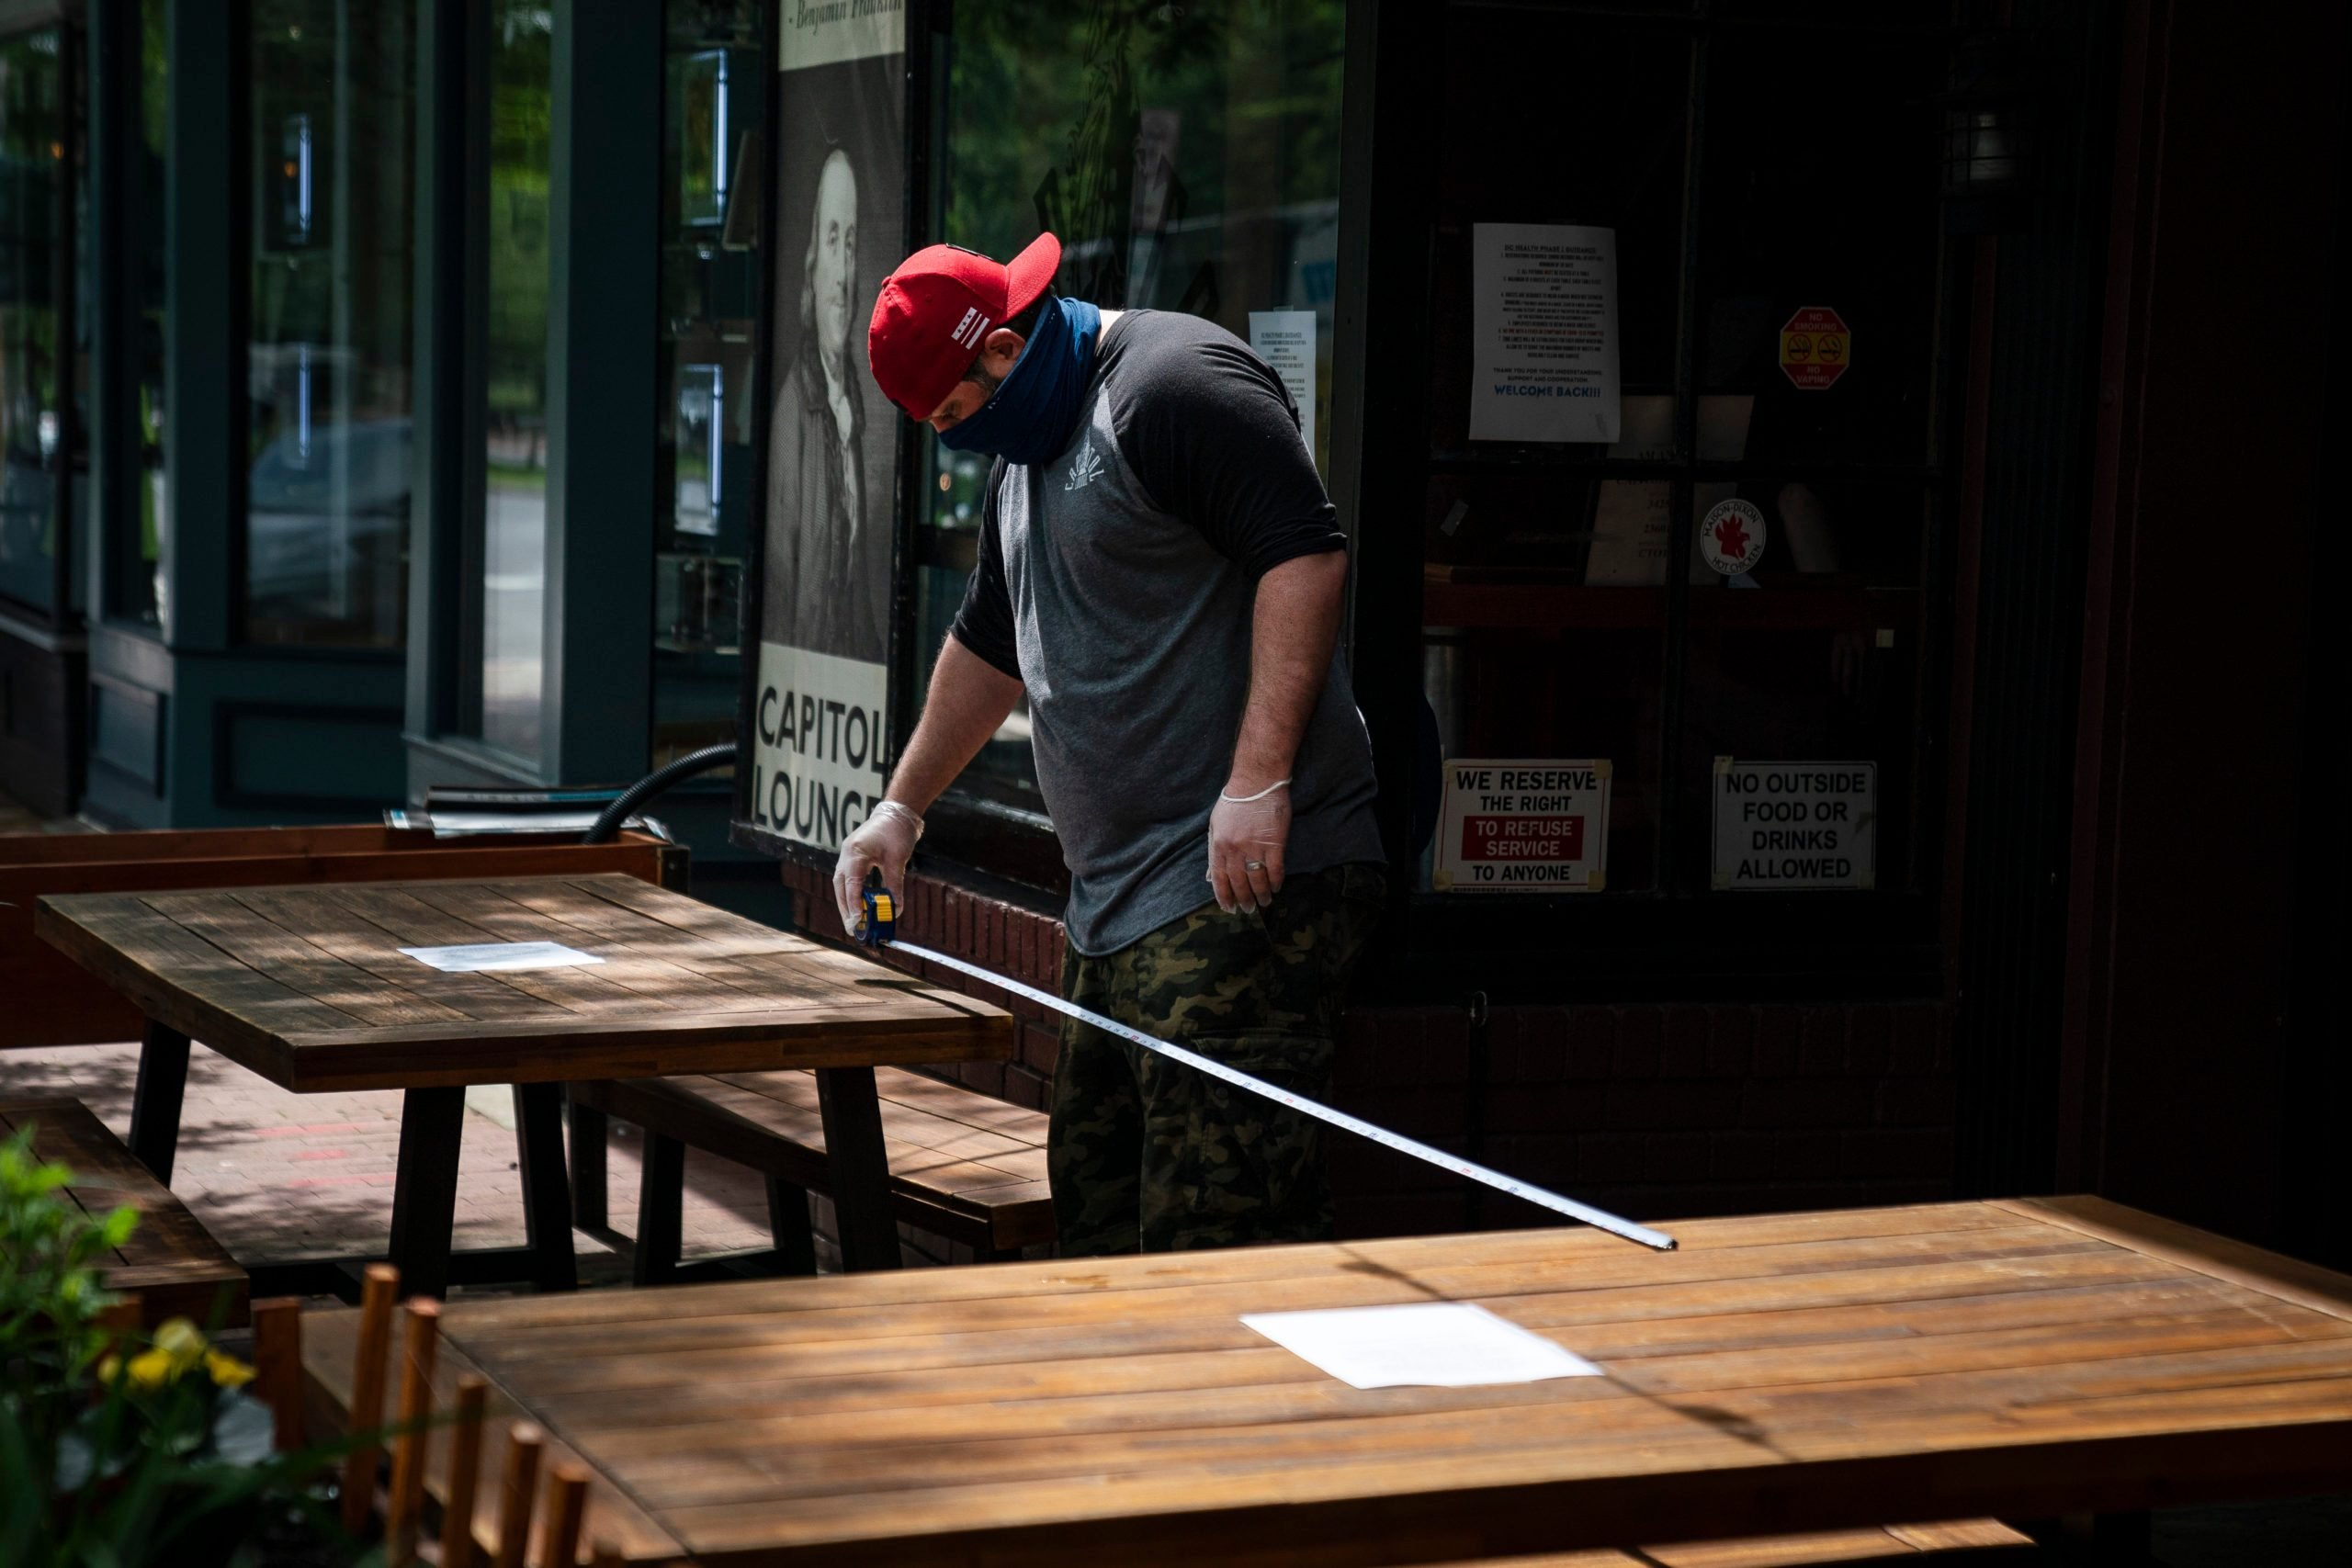 D.C. Begins Phase 1 Of Reopening Businesses